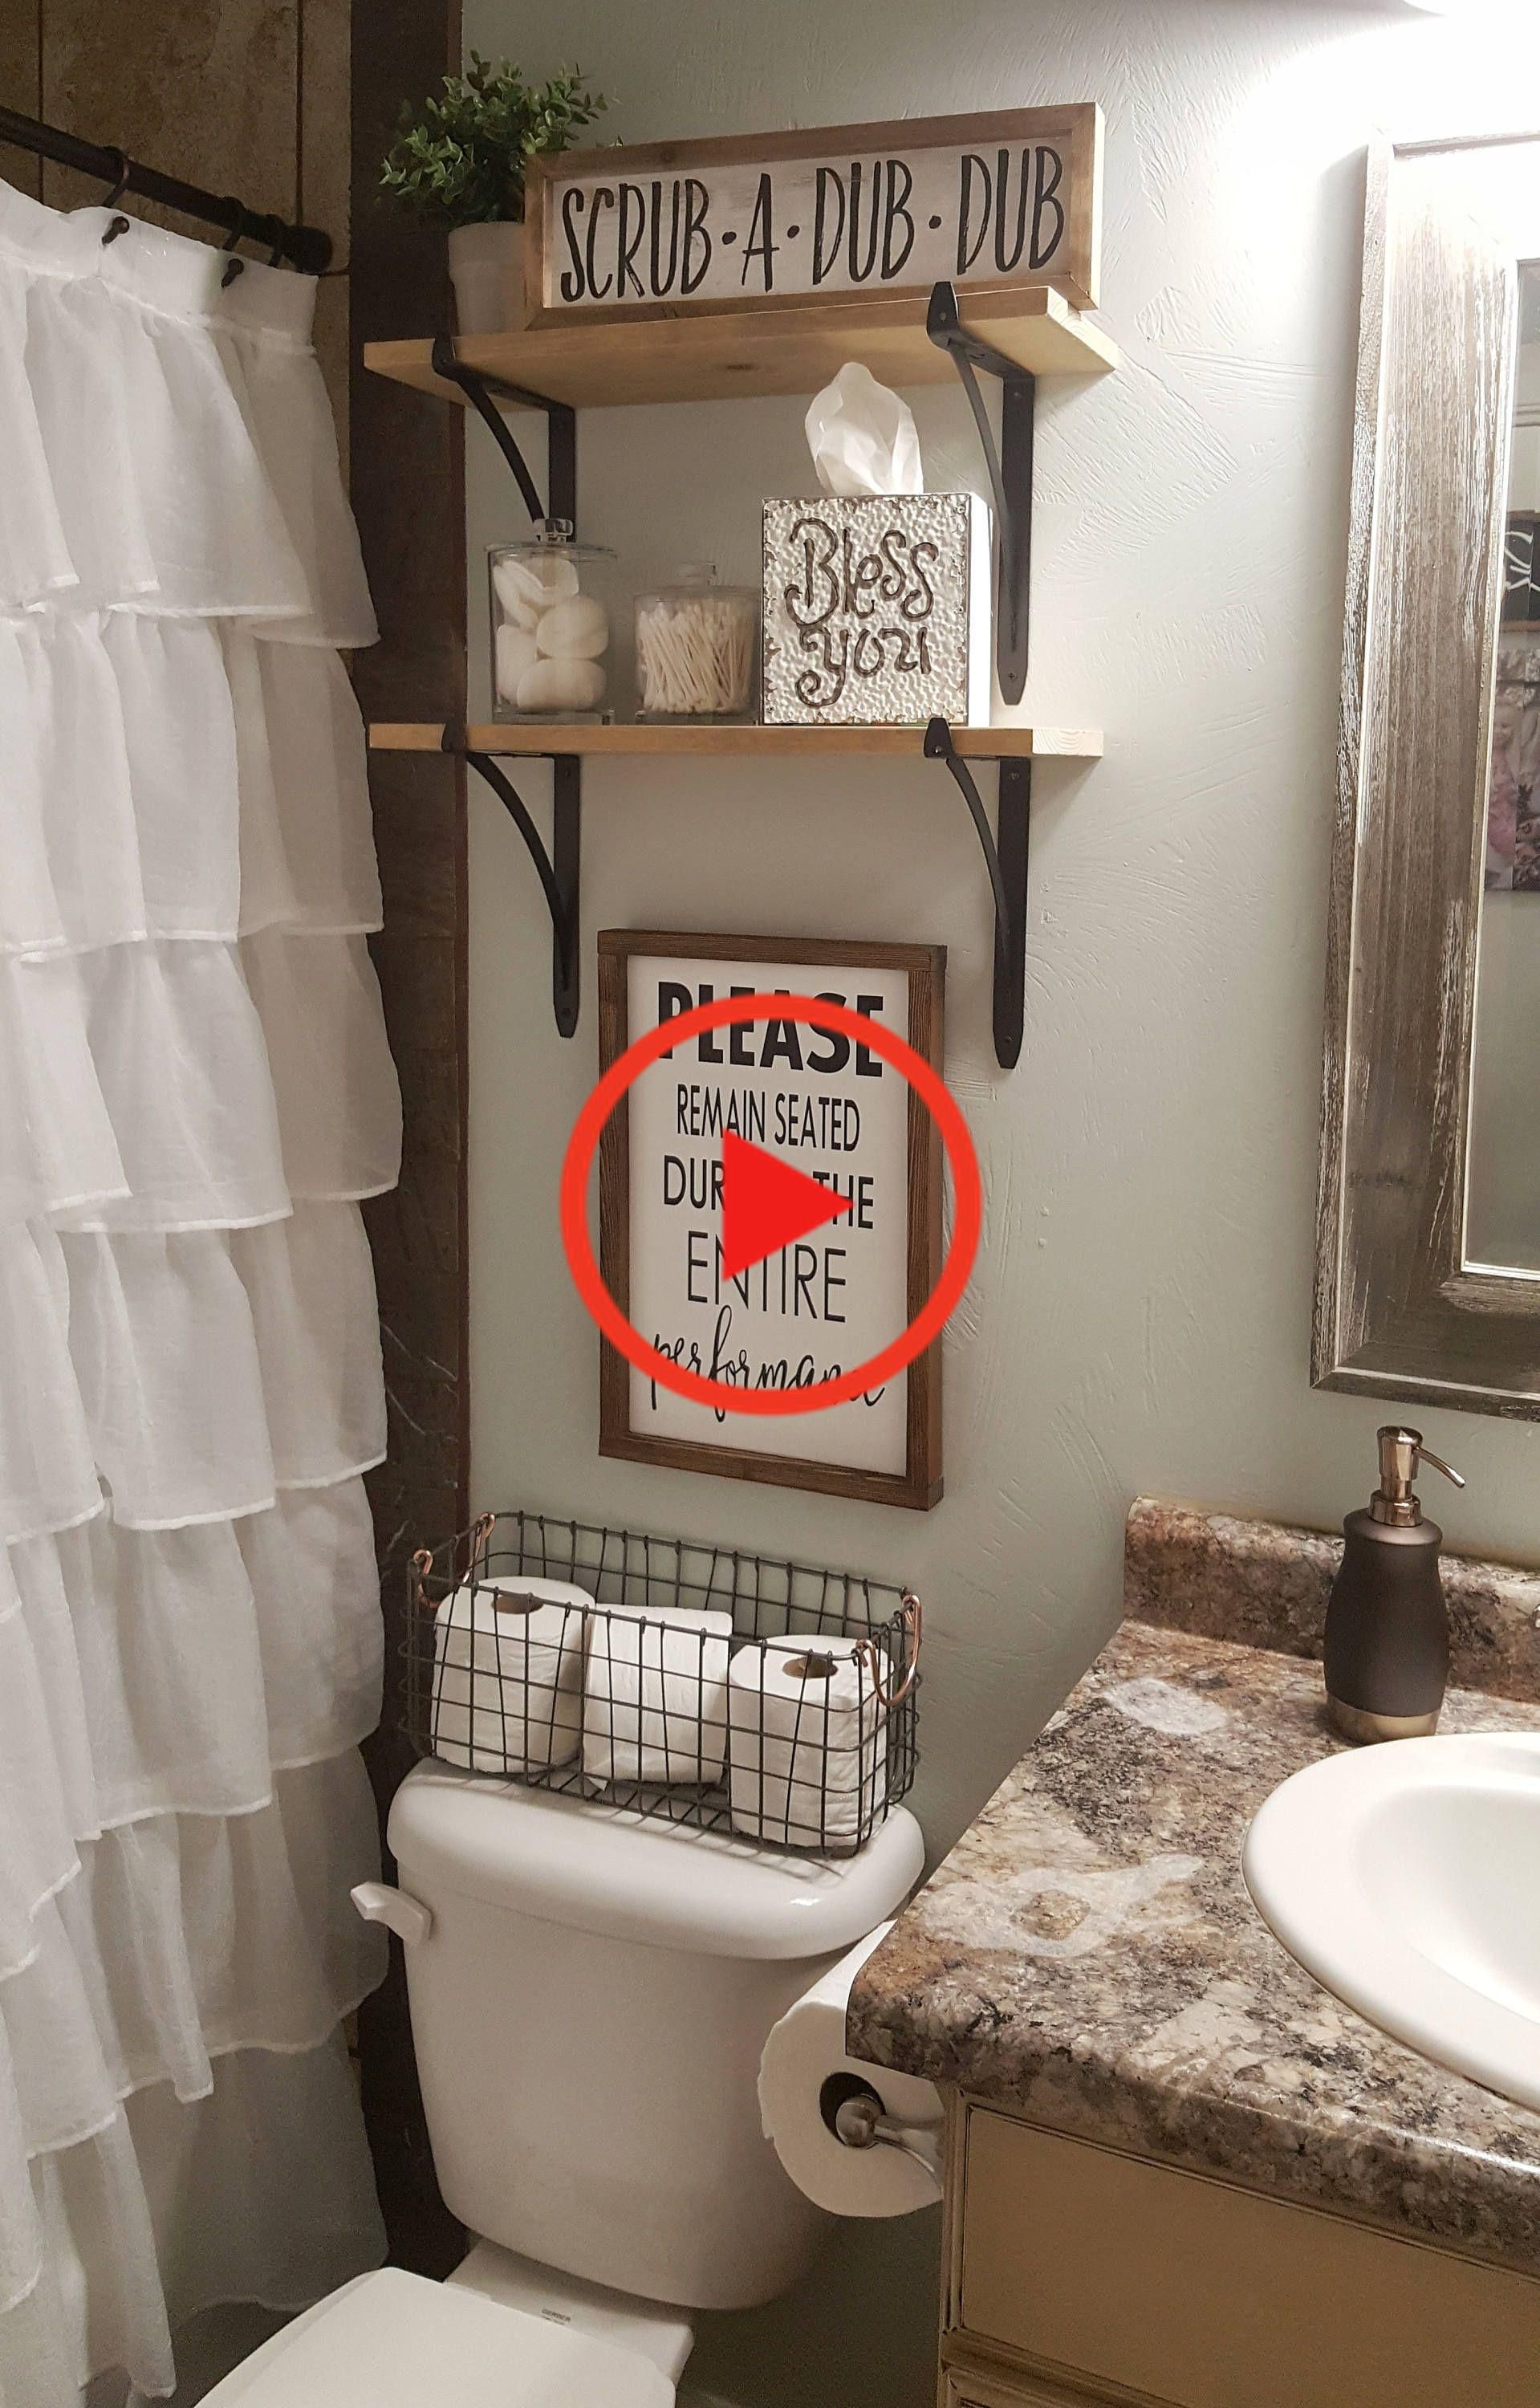 Bathroom Signs Decor Elegant Please Remain Seated During Entire Performance